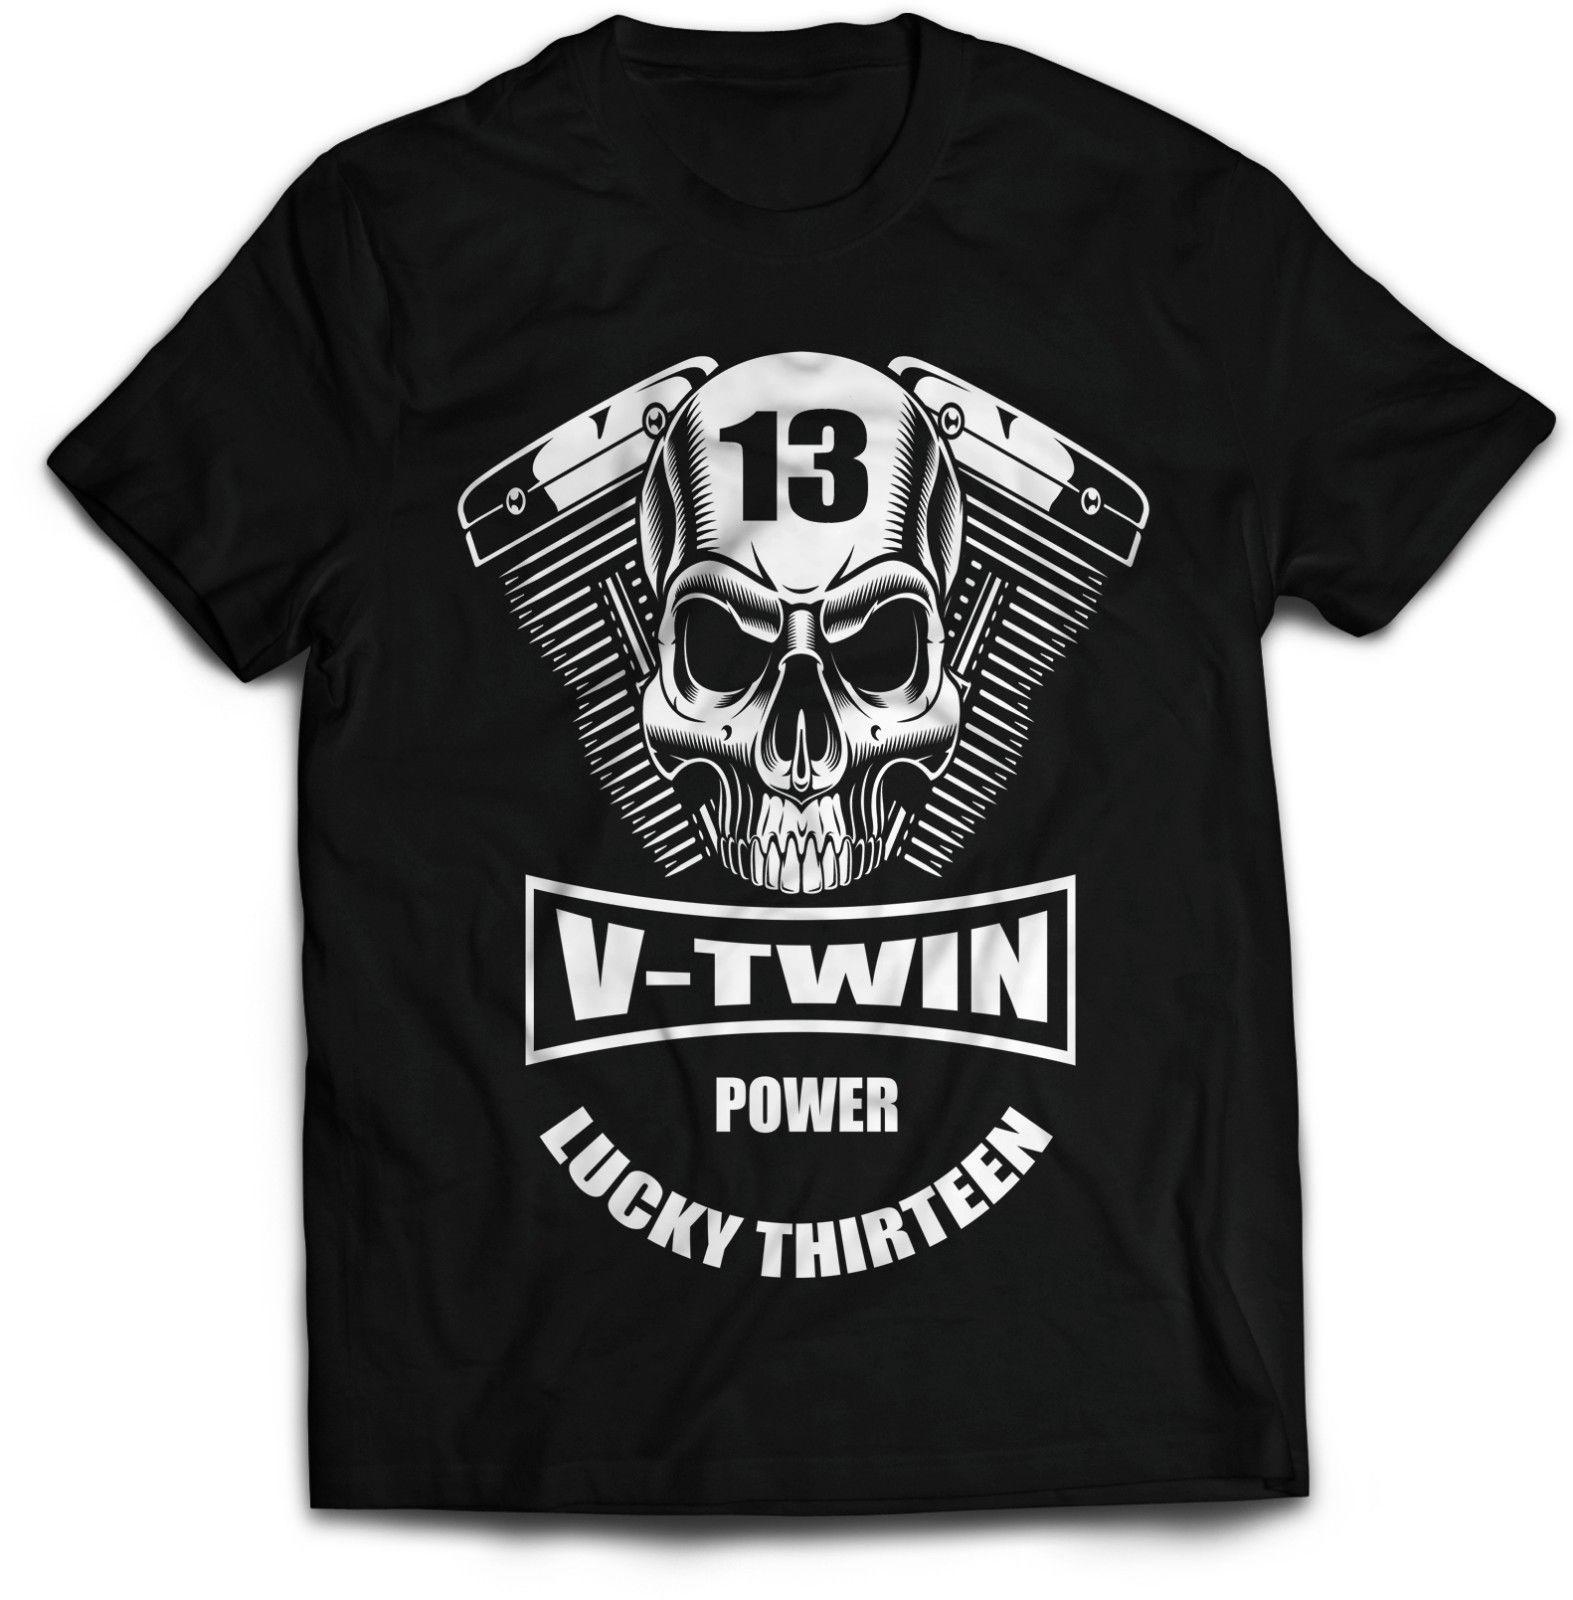 79f77b550 Biker T Shirt V Twin Power, Motorcycle Offensive Funny T Shirt Outlaw Lucky  13 Order T Shirts Quality T Shirts From Mentality80, $11.48| DHgate.Com